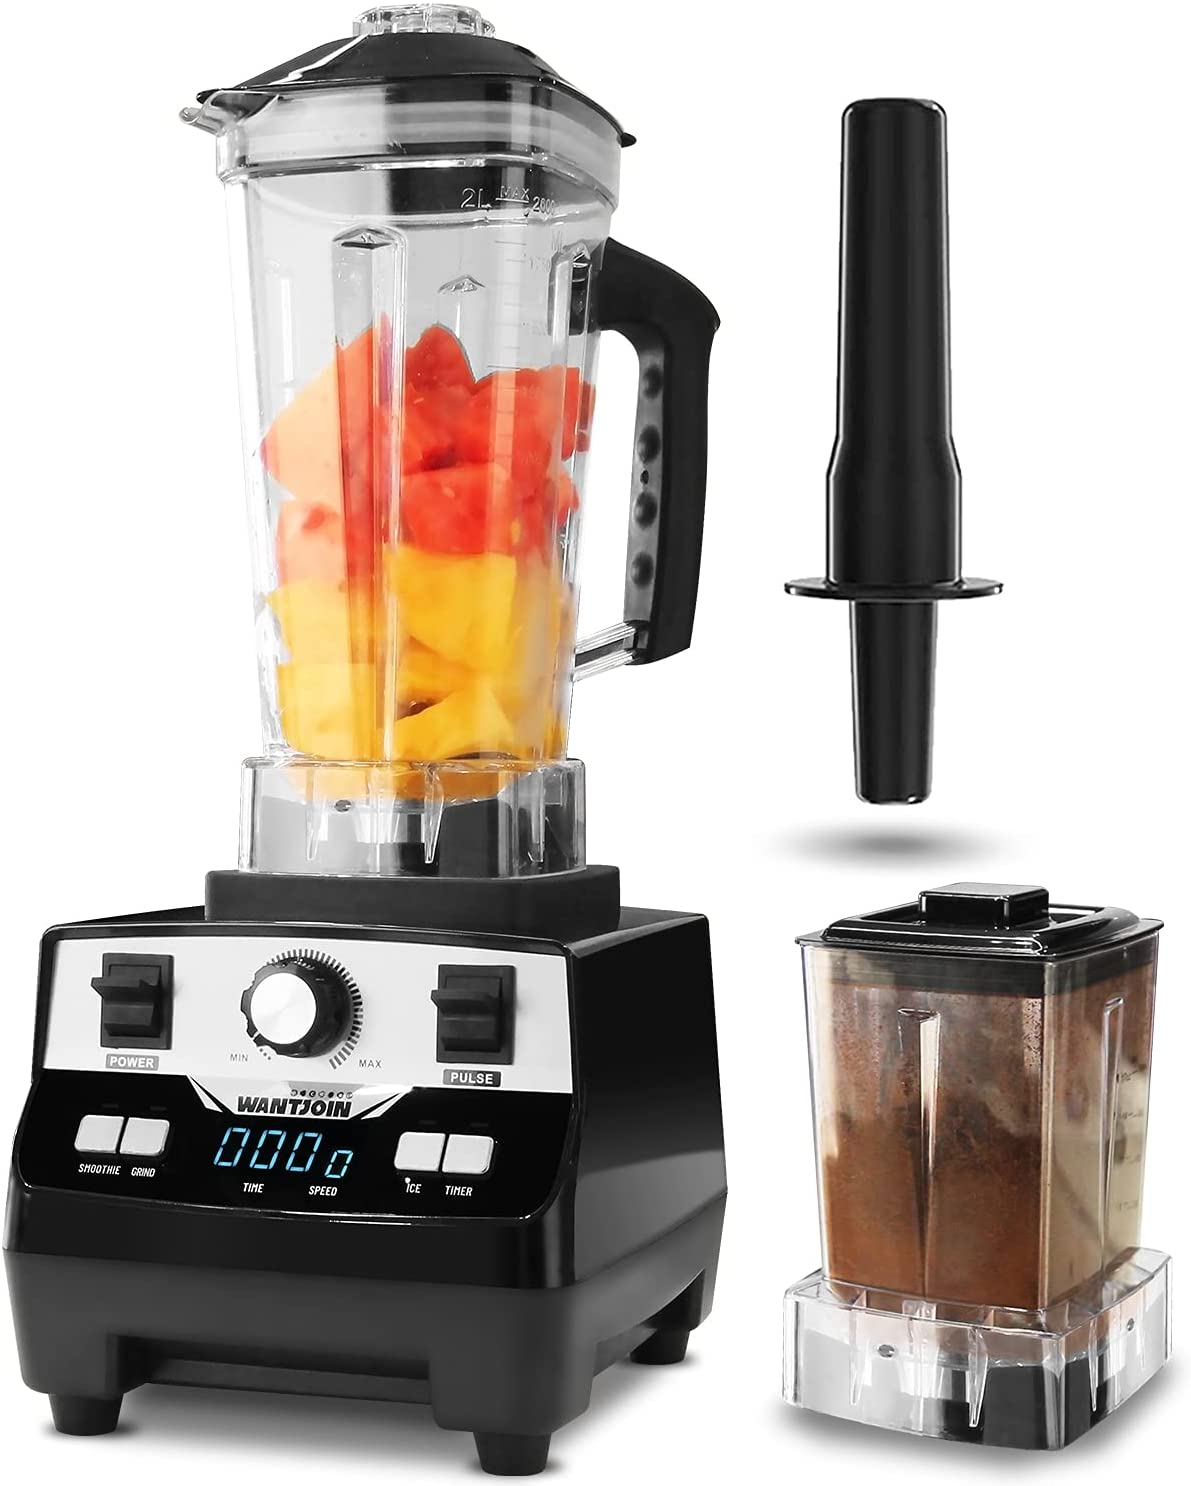 WantJoin Professional Blender, Countertop Blender ,Blender for kitchen 1400W High Power Home and Commercial Blender with Digital Timer, Smoothie Maker (double cup)